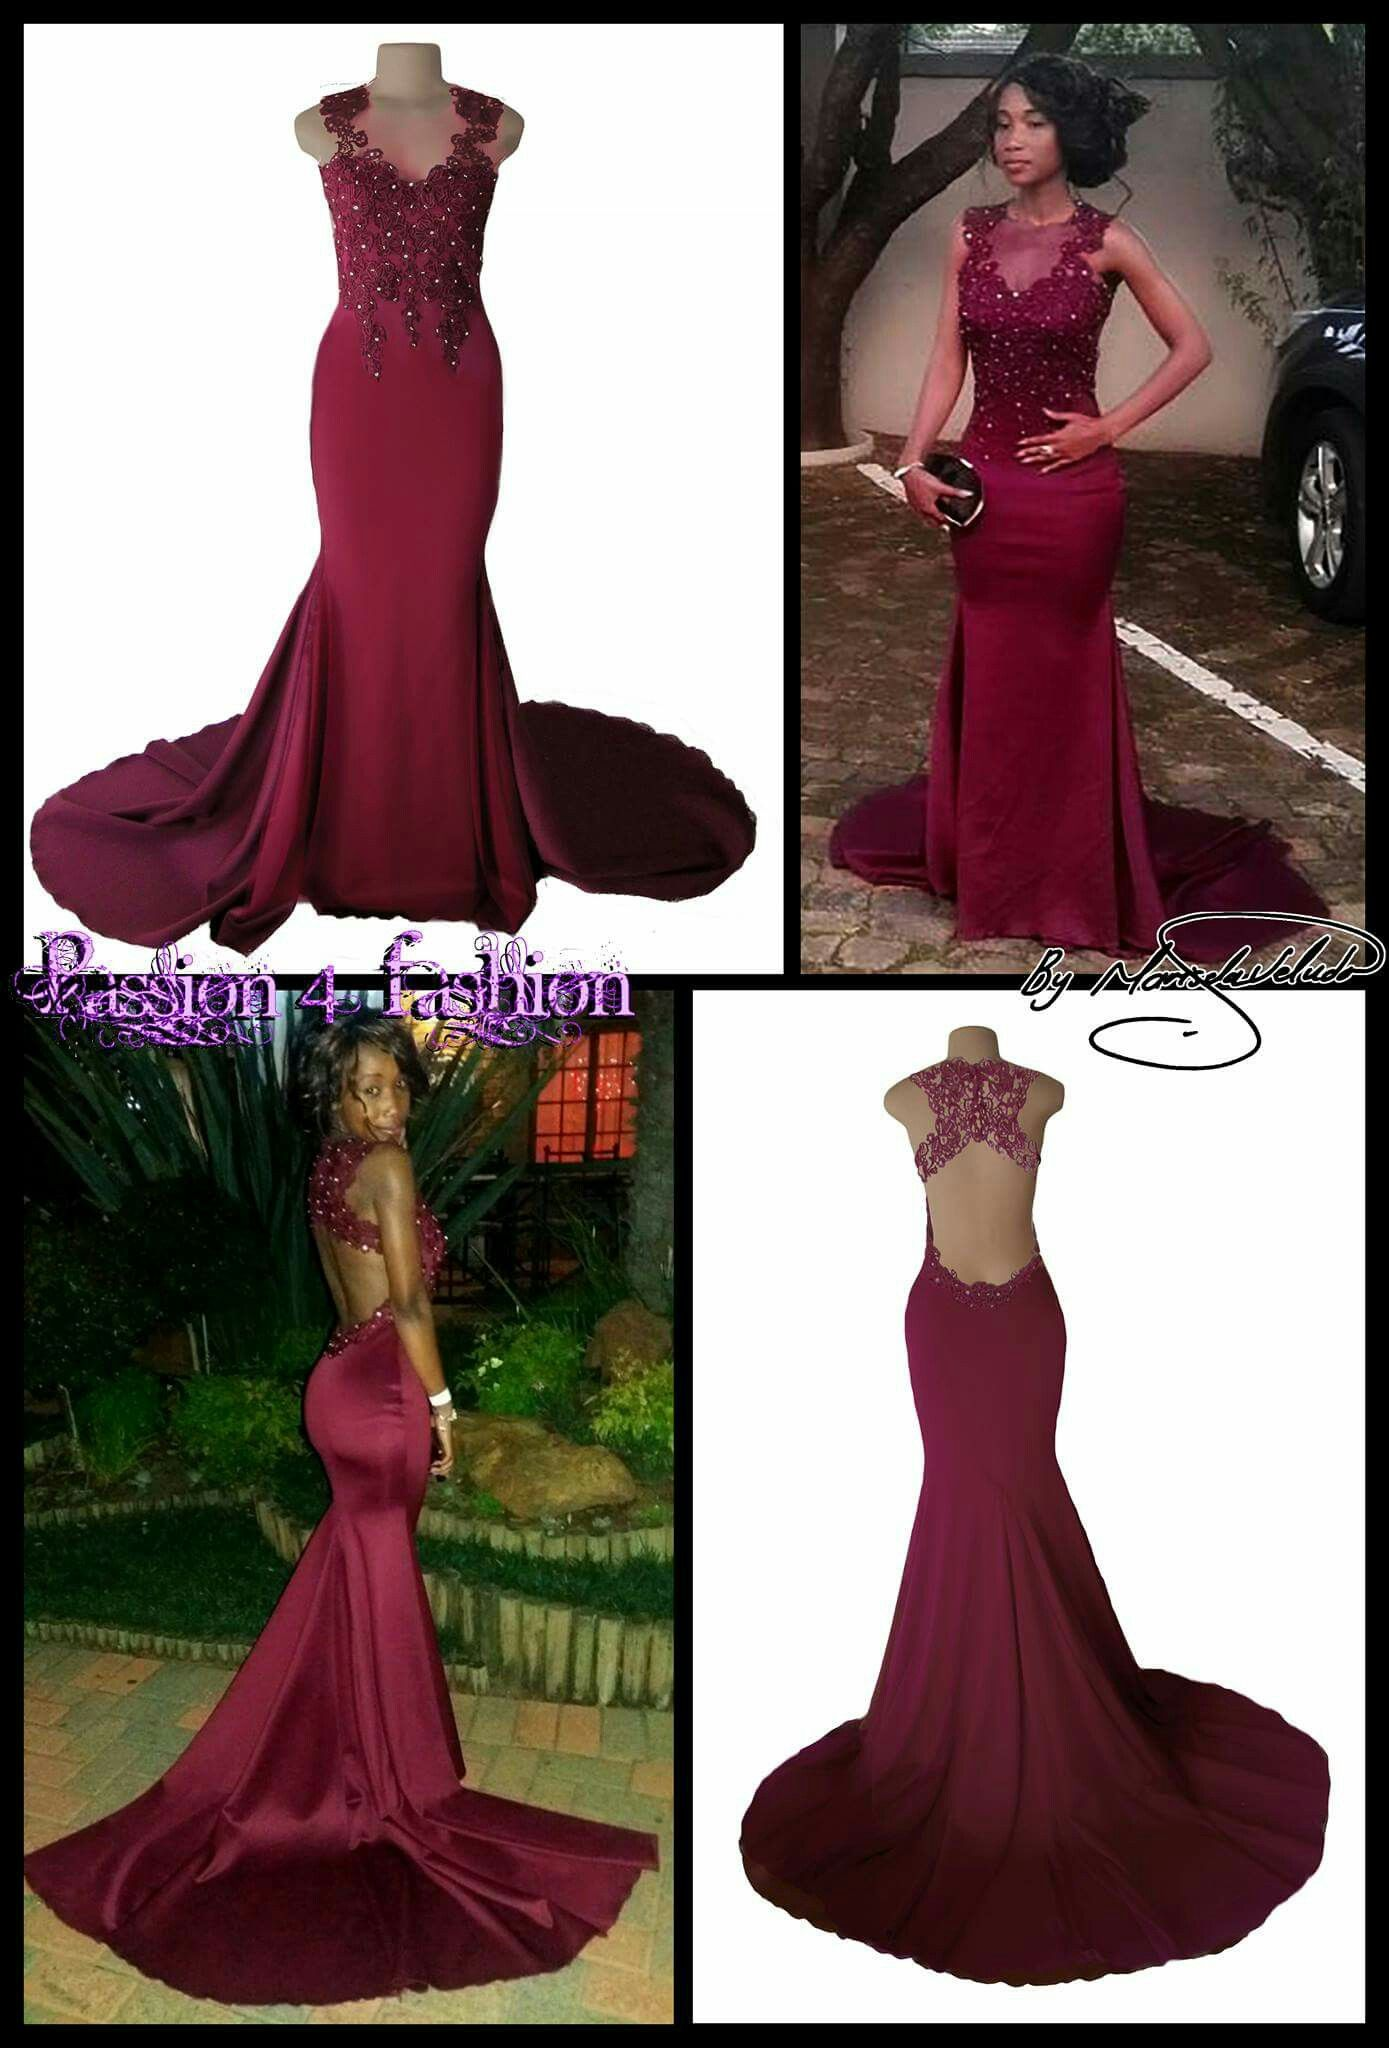 2fa3bc04b6e0 Burgundy soft mermaid, lace bodice matric dance dress with a low open back.  A train and silver beads. #mariselaveludo #fashion #matricdance  #matricdress ...